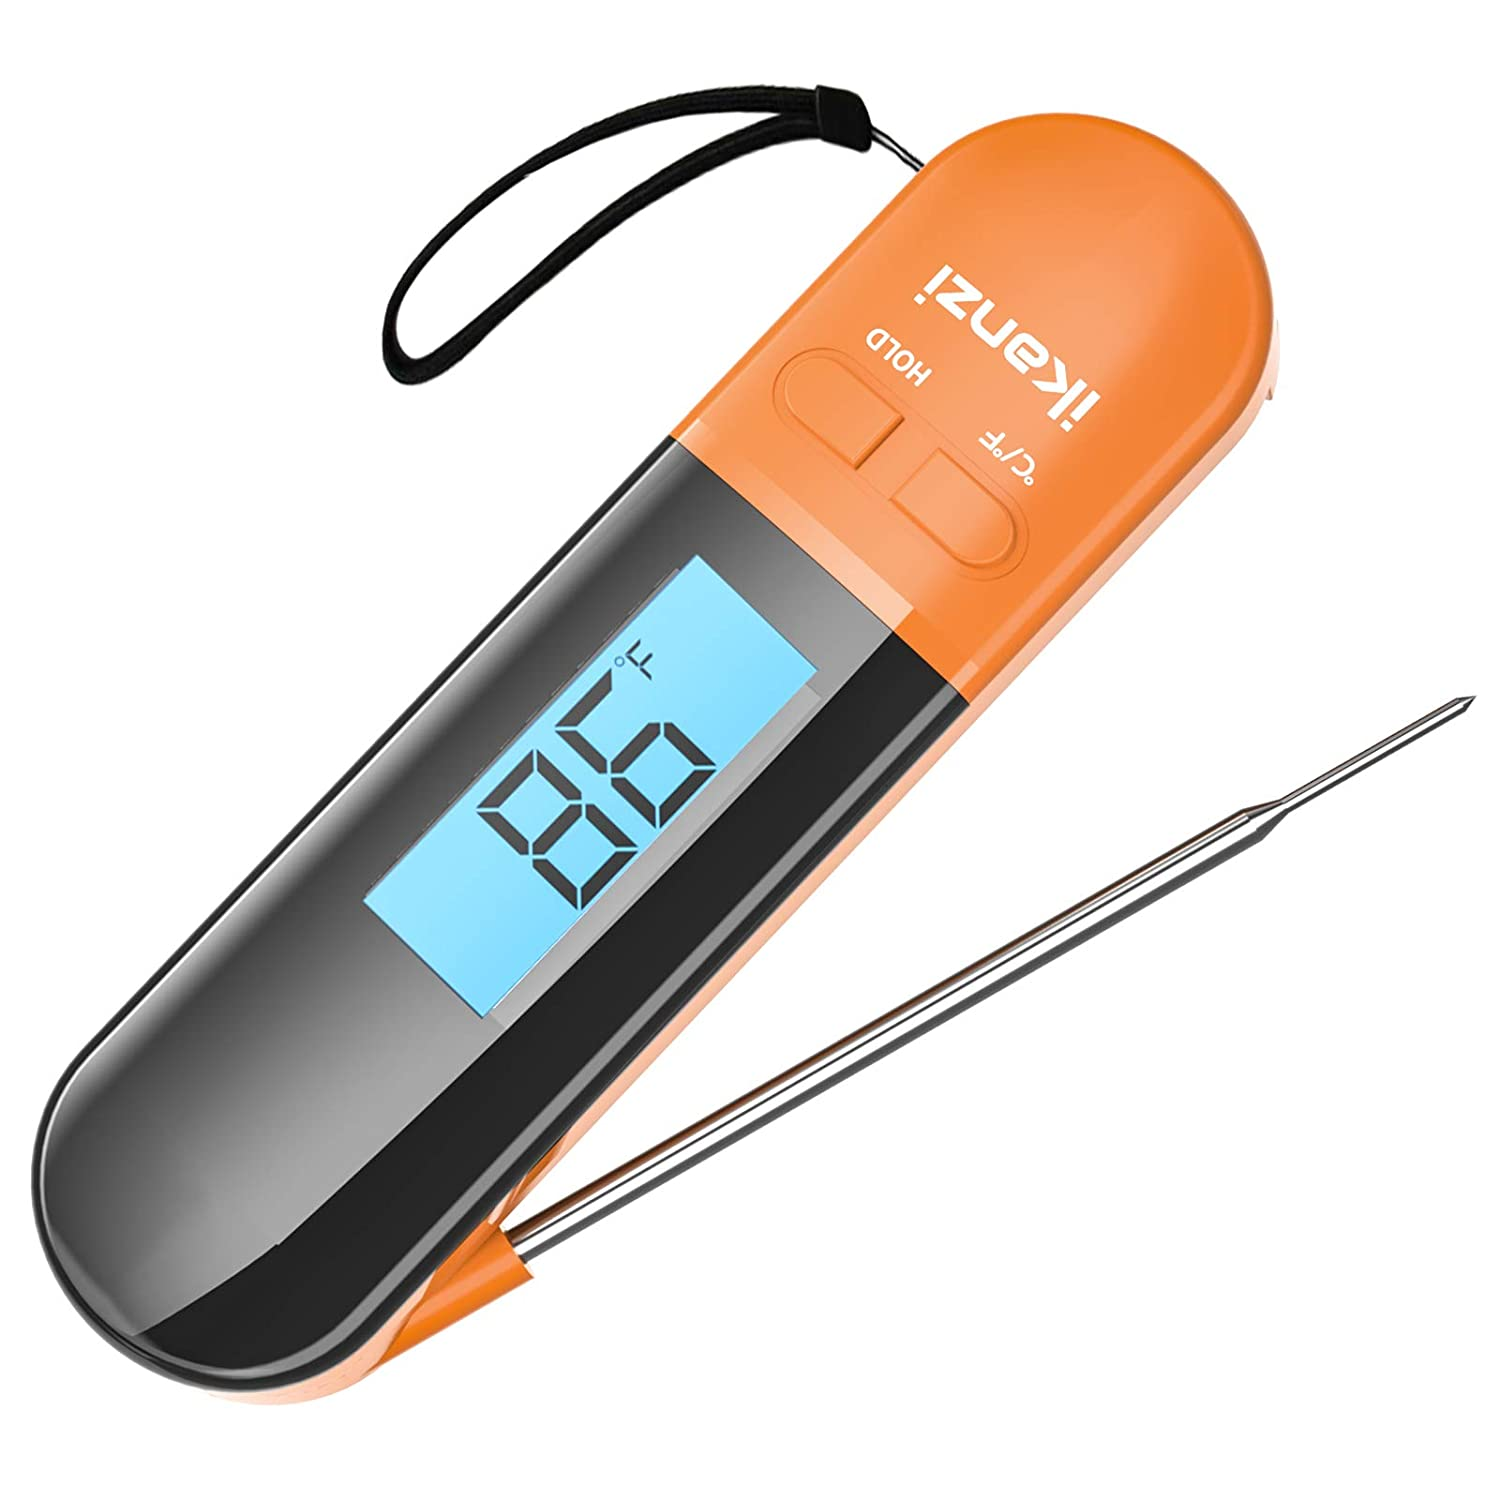 Meat Thermometer for Cooking Food Thermometer Digital Instant Read Kitchen Cooking Thermometer with Backlight LCD for Grilling/BBQ/Baking/Candy/Liquids/Oil(Orange)